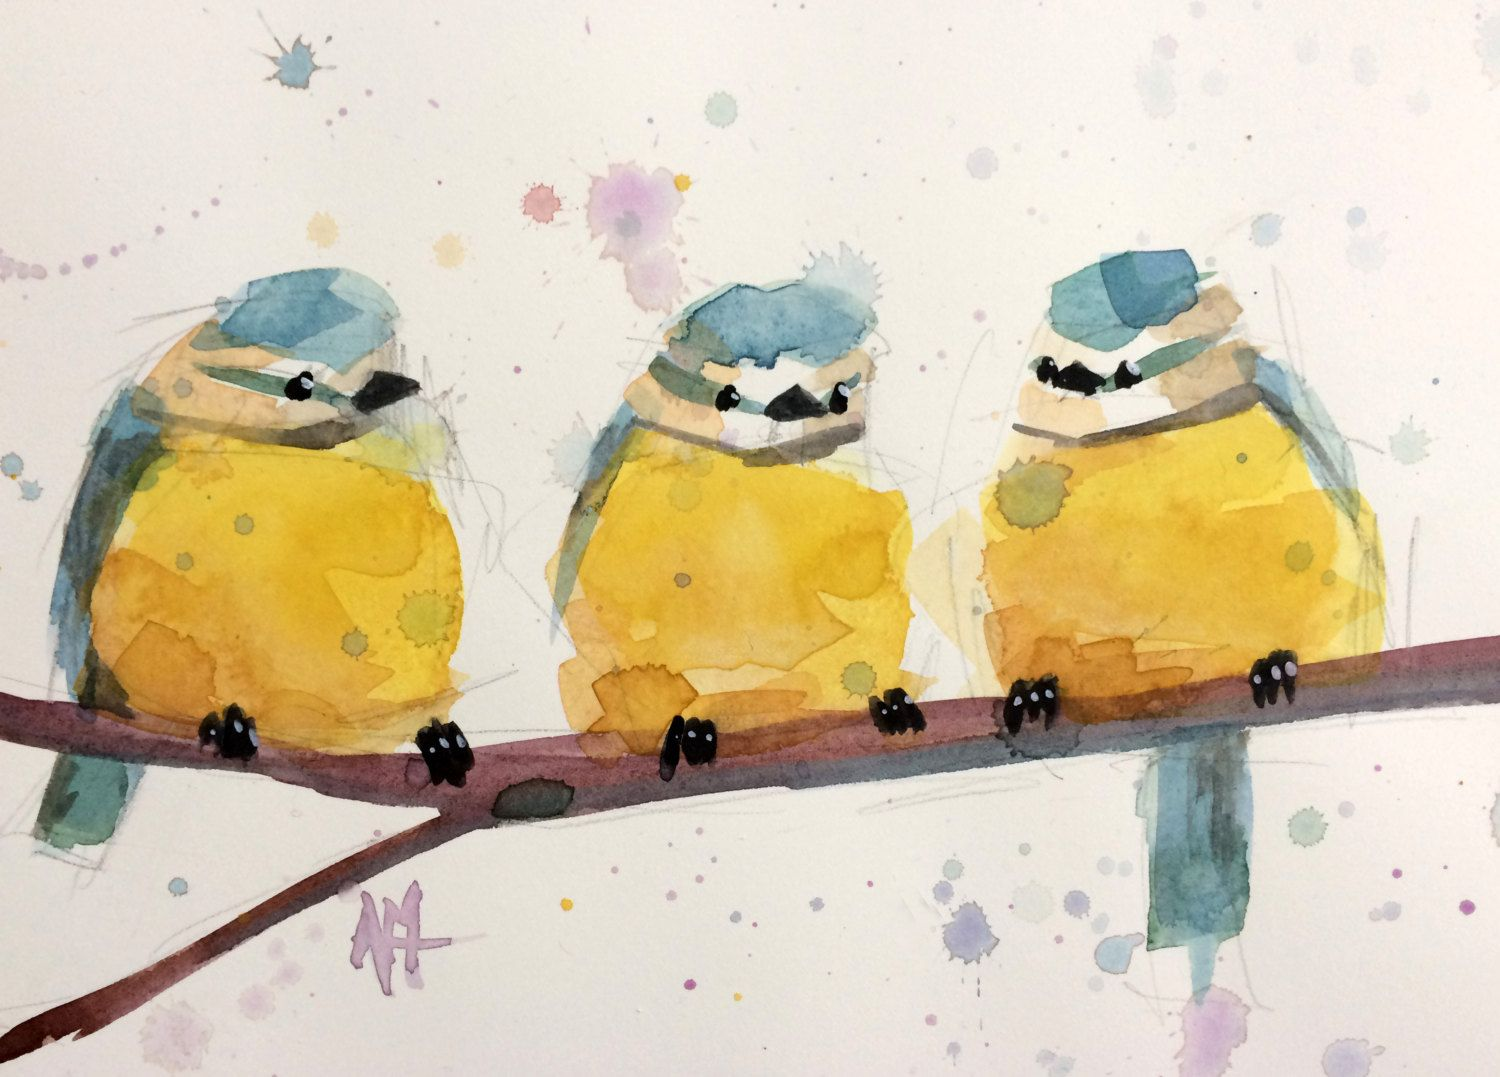 Three Blue Tits no. 4 Original Watercolor Painting by Angela Moulton 8 x 10 inch with 11 x 14 inch White Mat by prattcreekart on Etsy